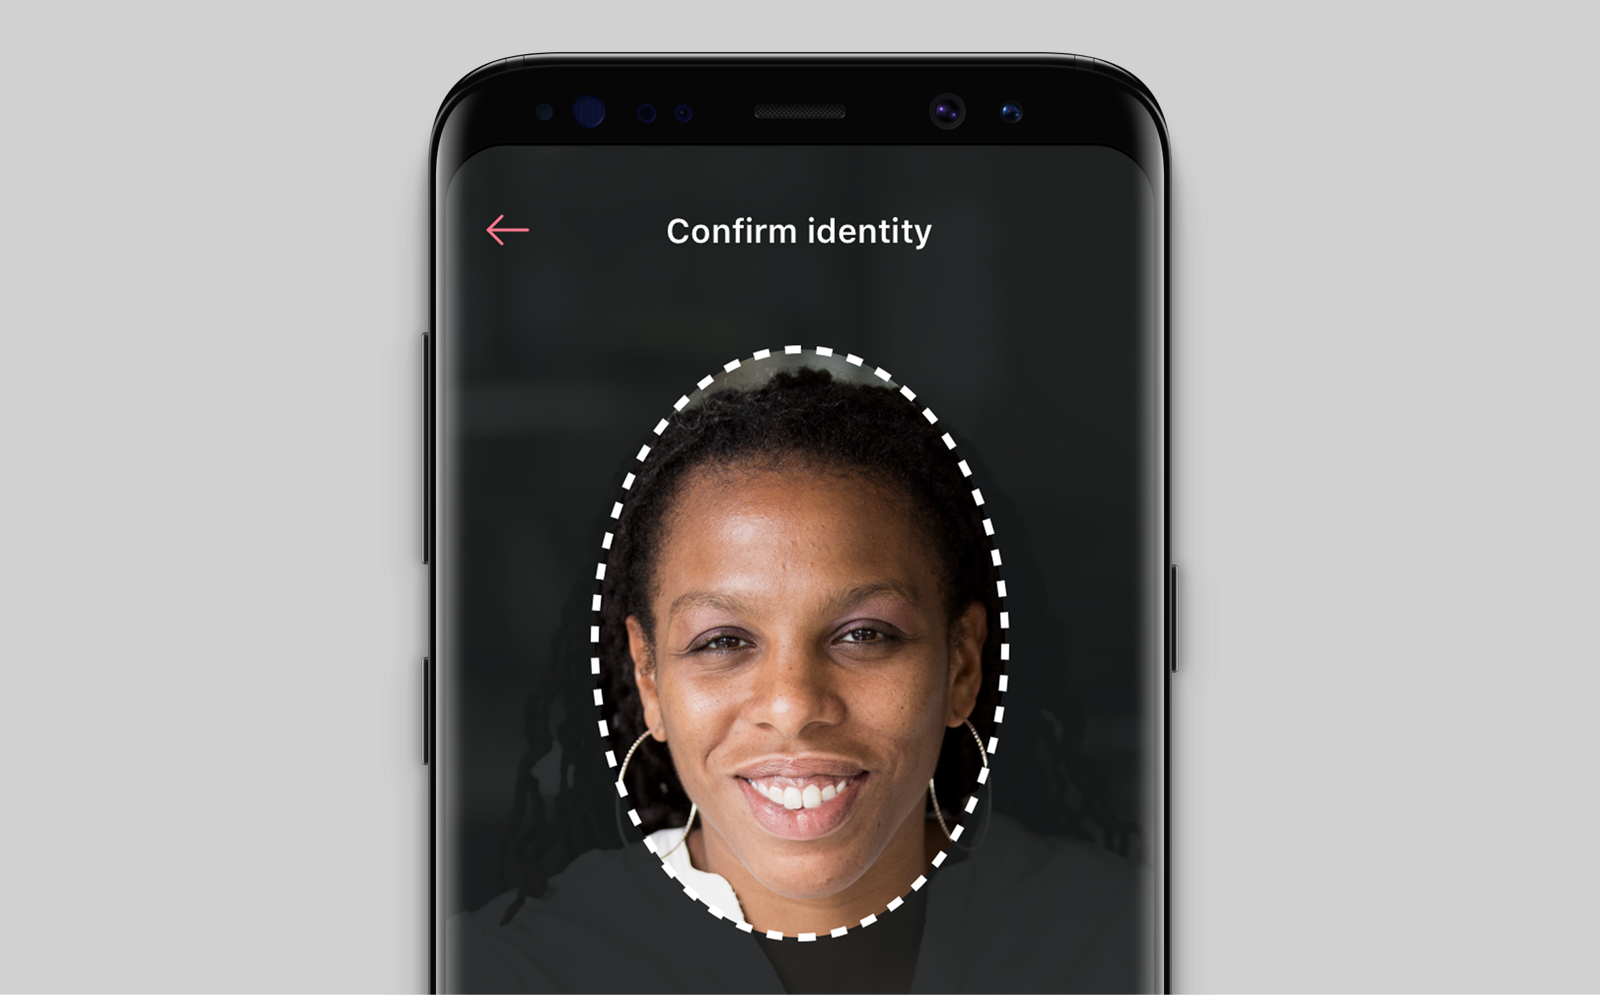 Face verification screen